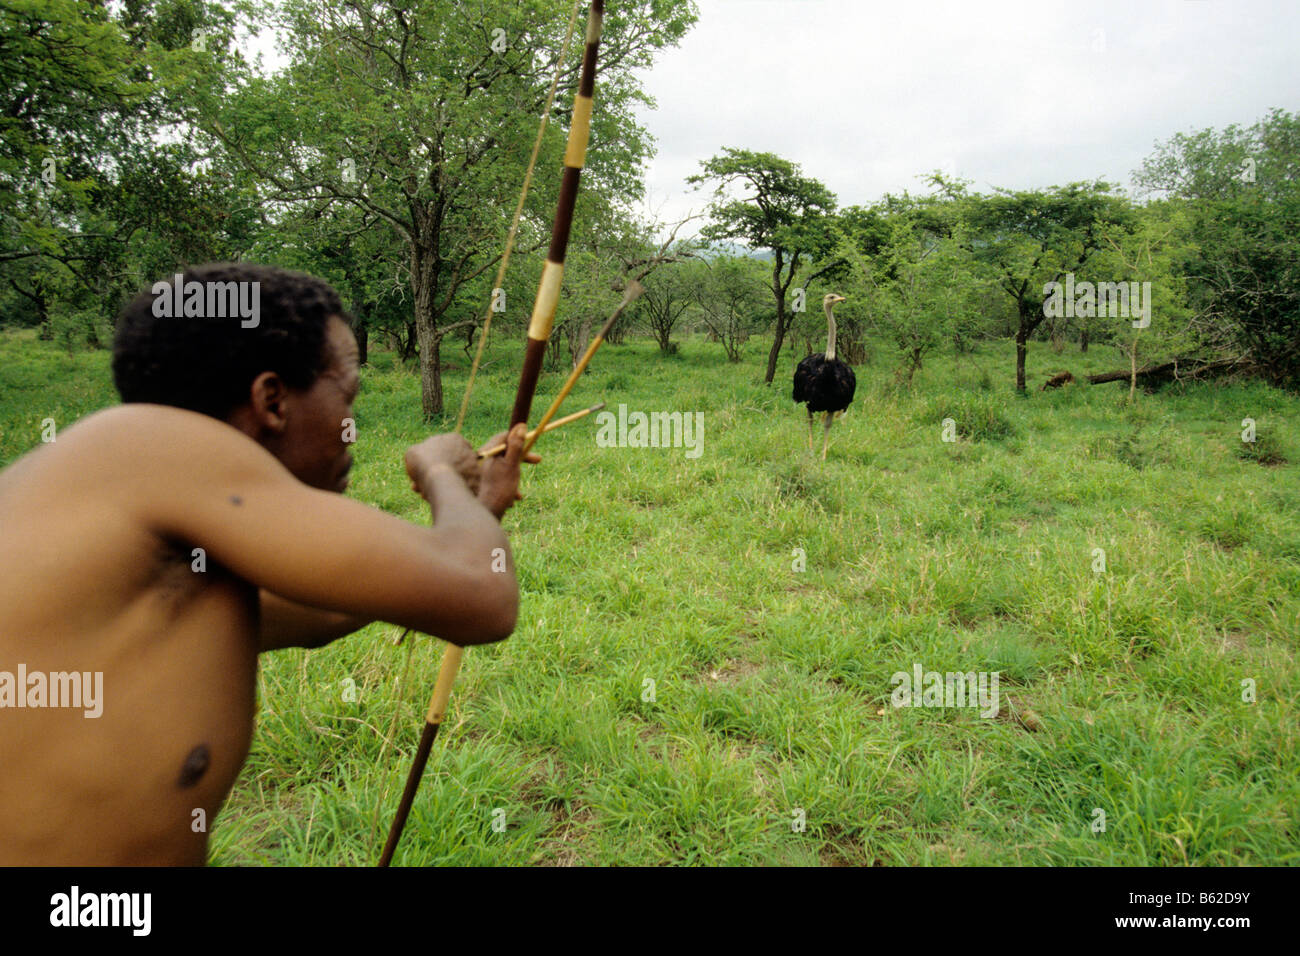 Bushman (San), man hunting ostrich with bow and arrow - Stock Image